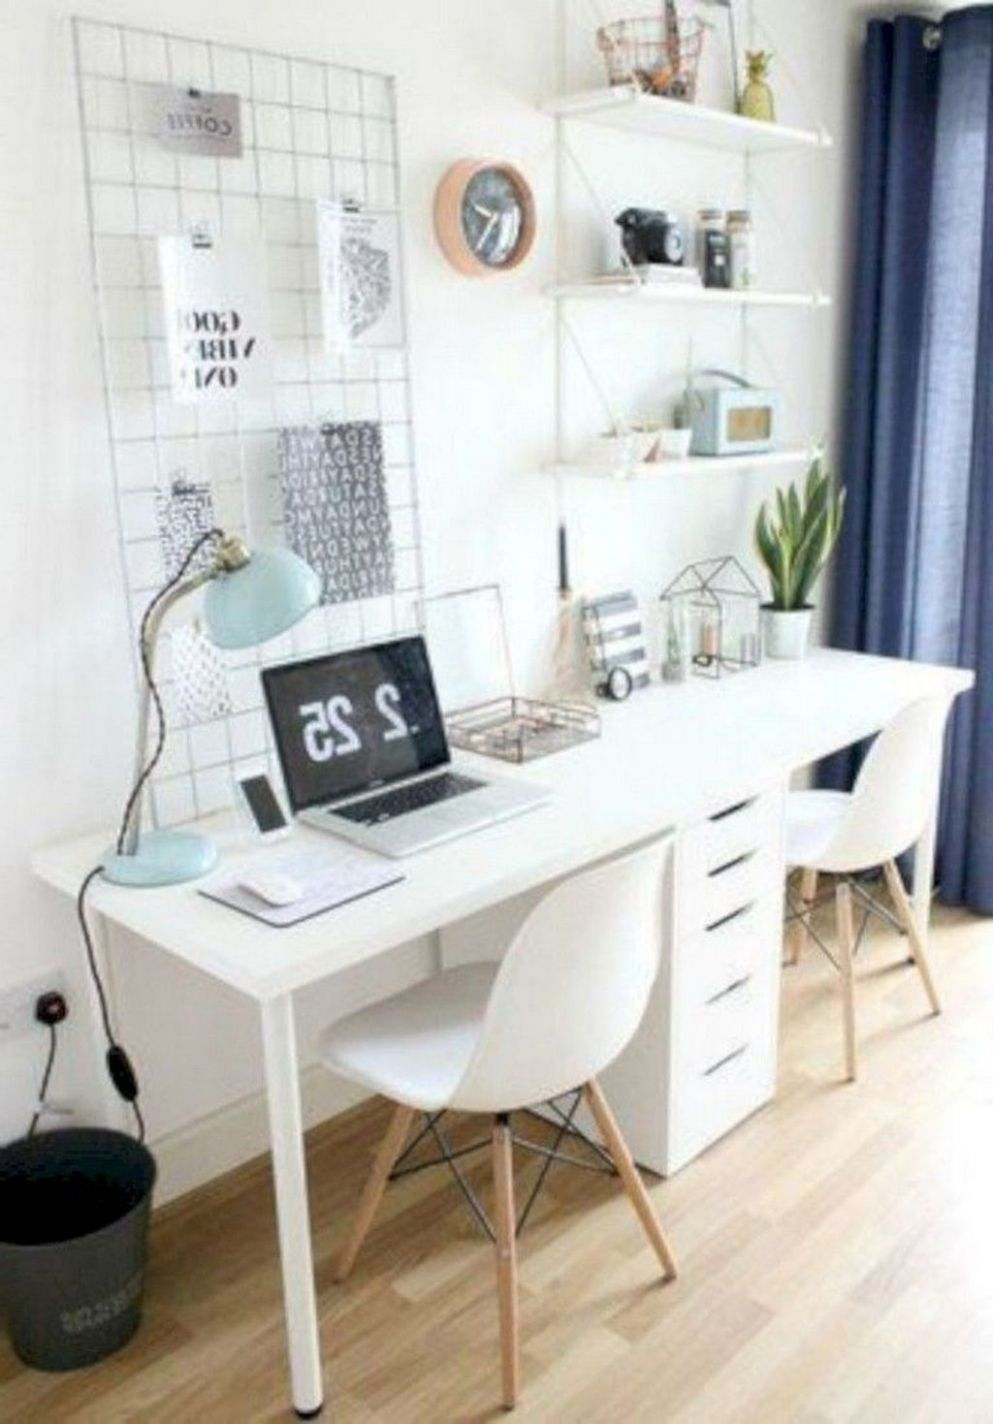 9 Comfy Home Office Design Ideas For Small Apartment - TRENDEDECOR